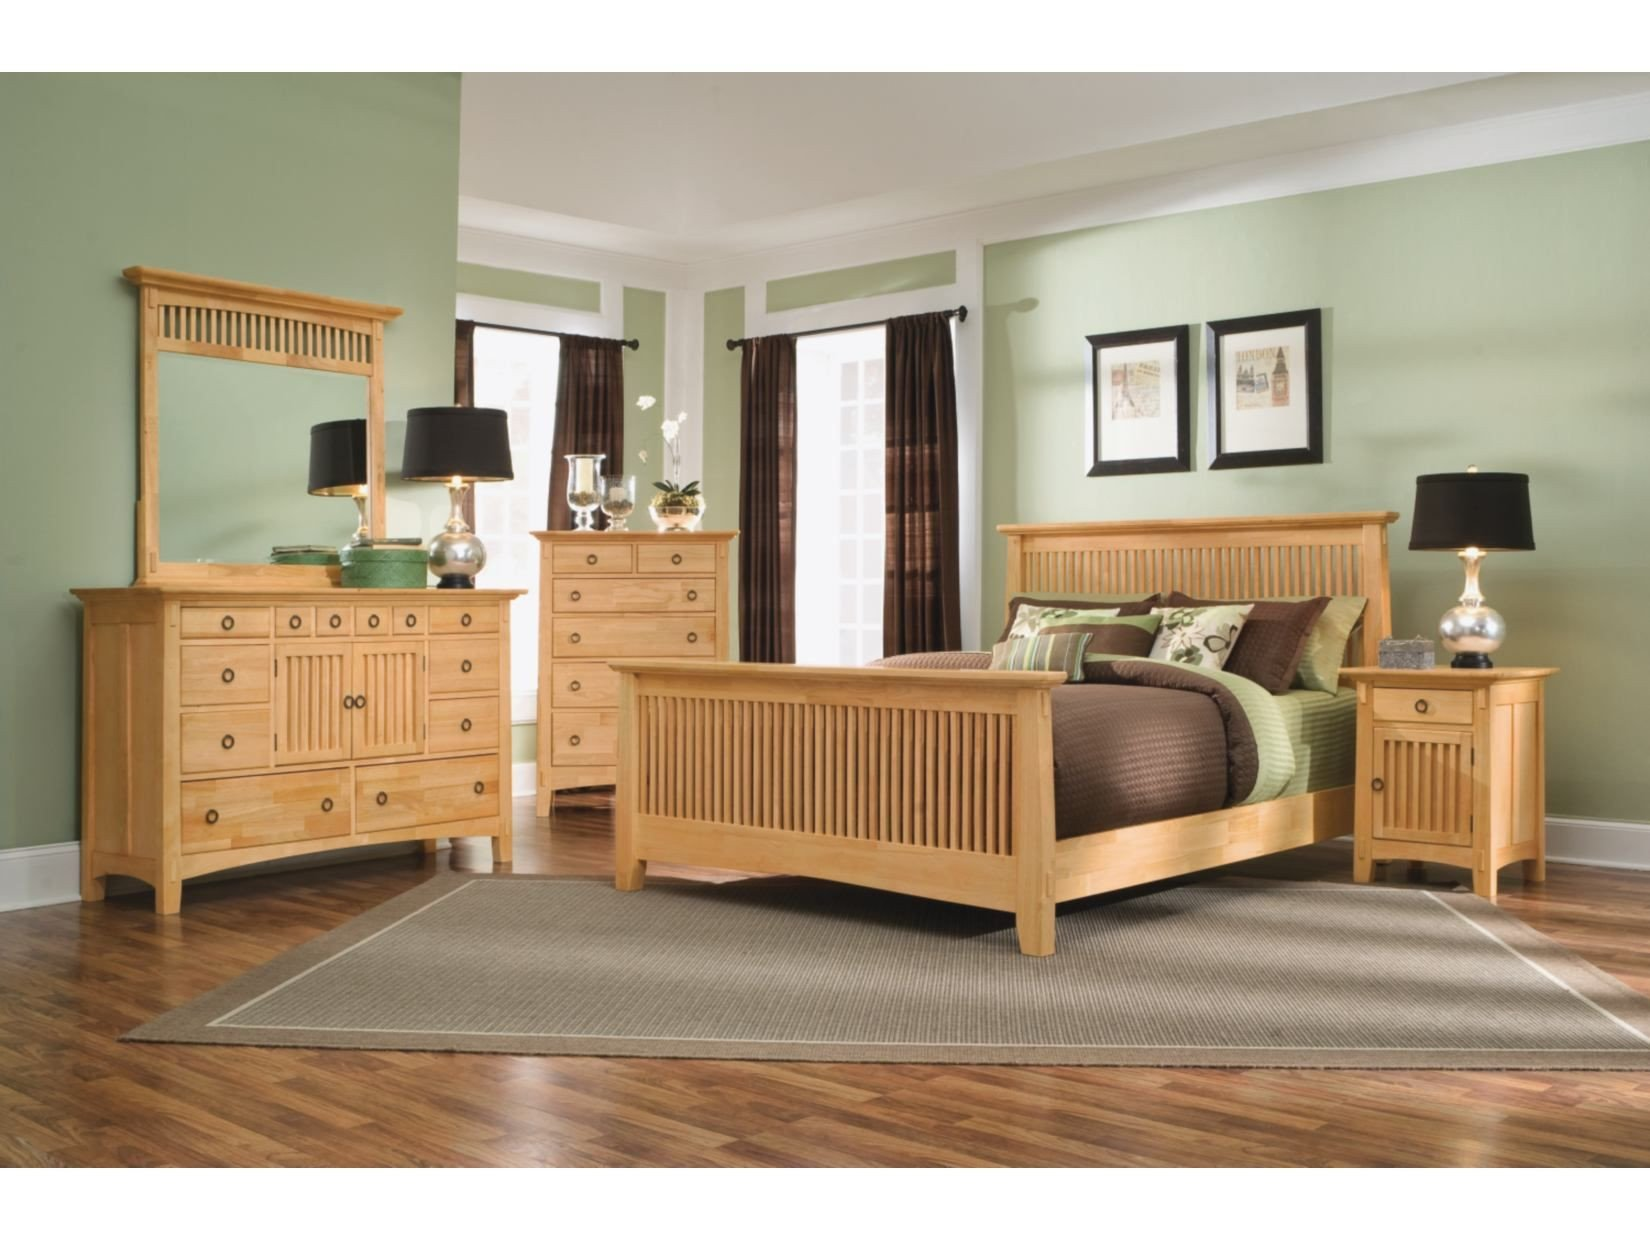 Broyhill King Bedroom Set Best Of Arts & Crafts 5 Pc Bedroom Package American Signature